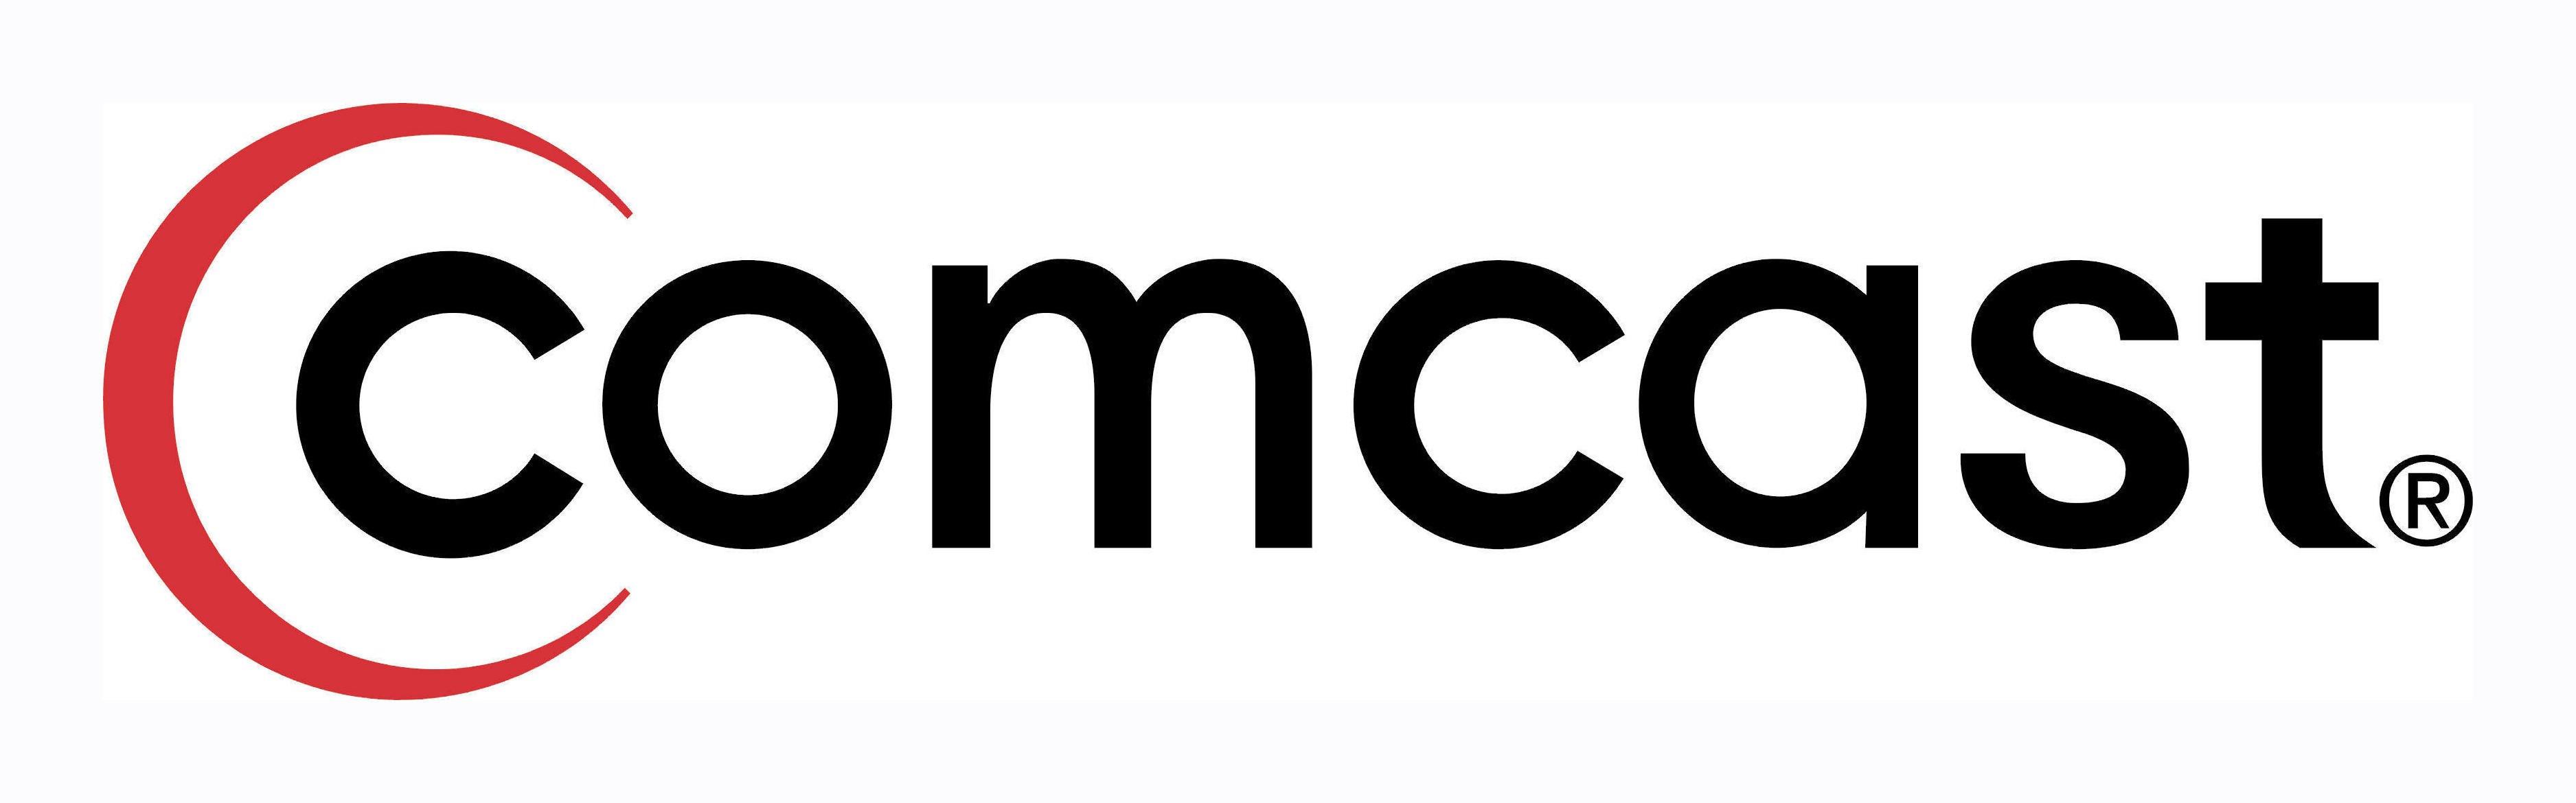 Does Comcast Offer HIPAA Compliant Email? - Paubox